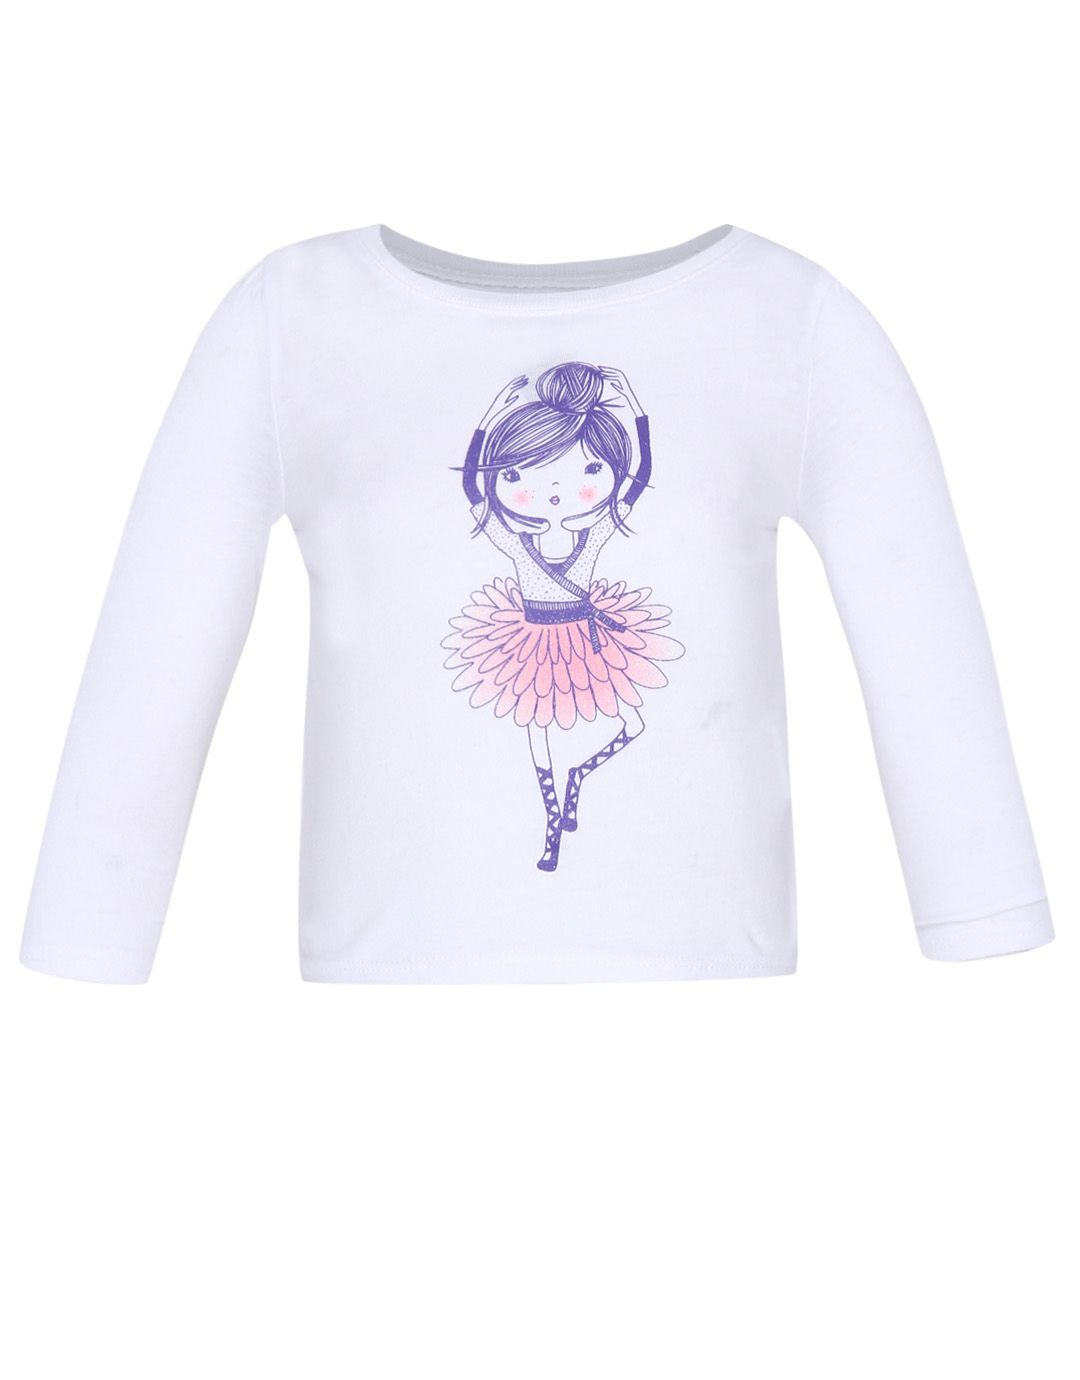 f4e56391201 The Children's Place Toddler Girls Long Sleeve Graphic Tee